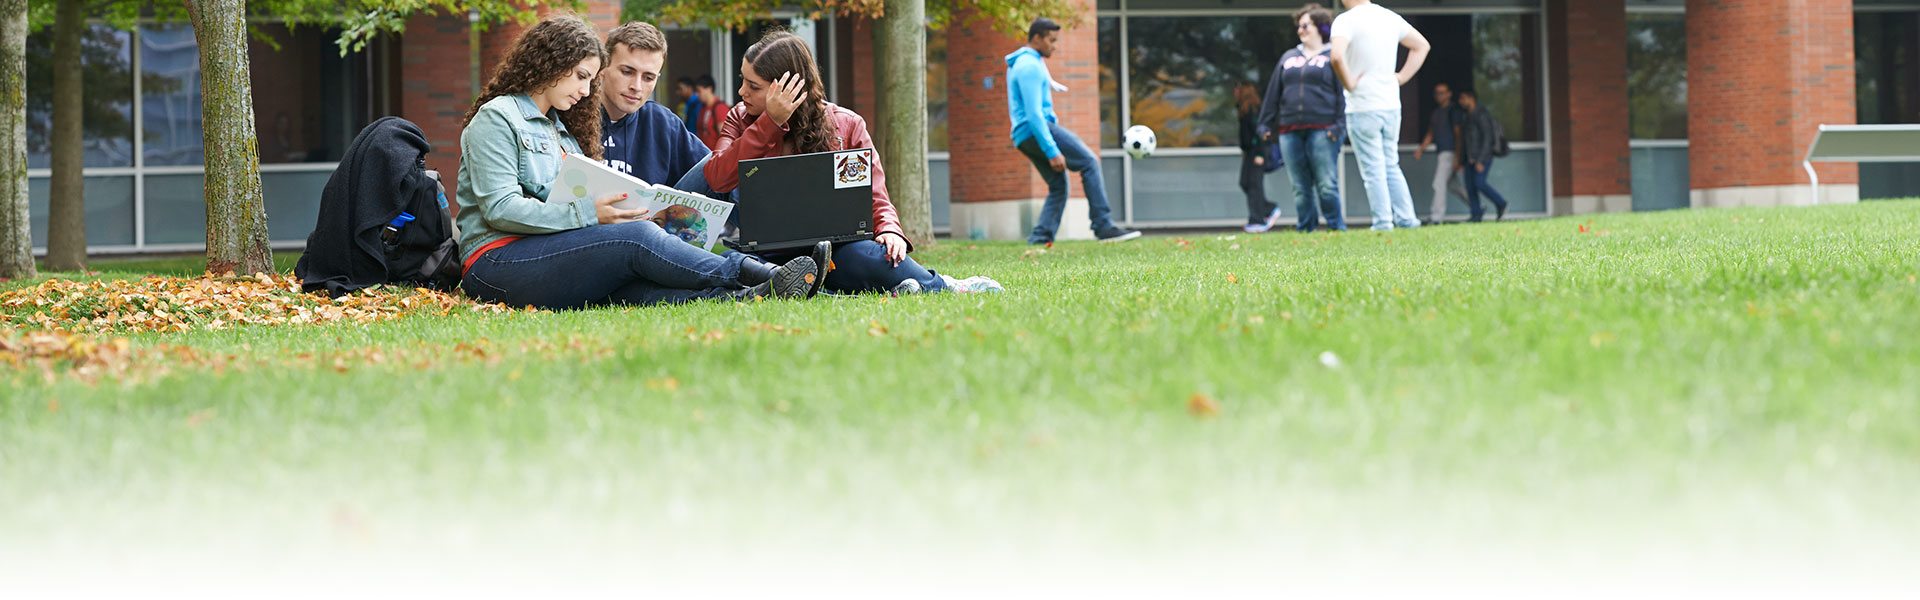 Students sitting outside UOIT building.